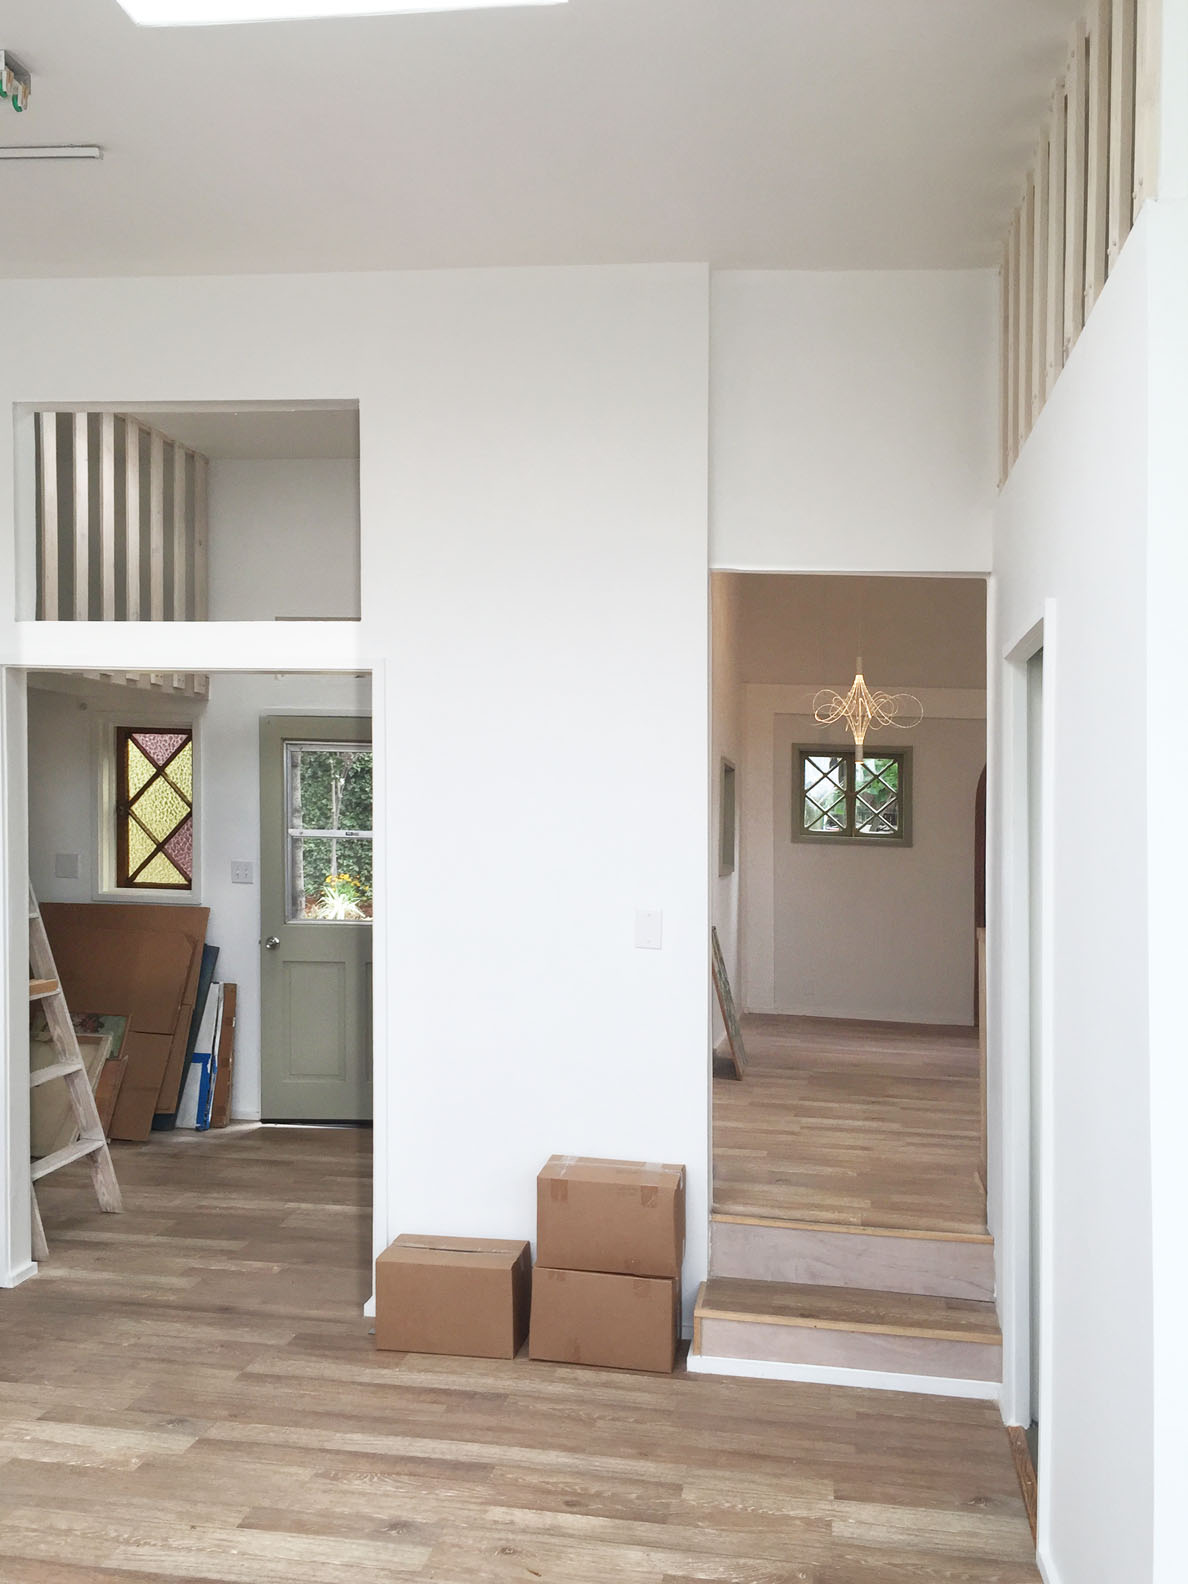 View to Front Spaces.s.jpg